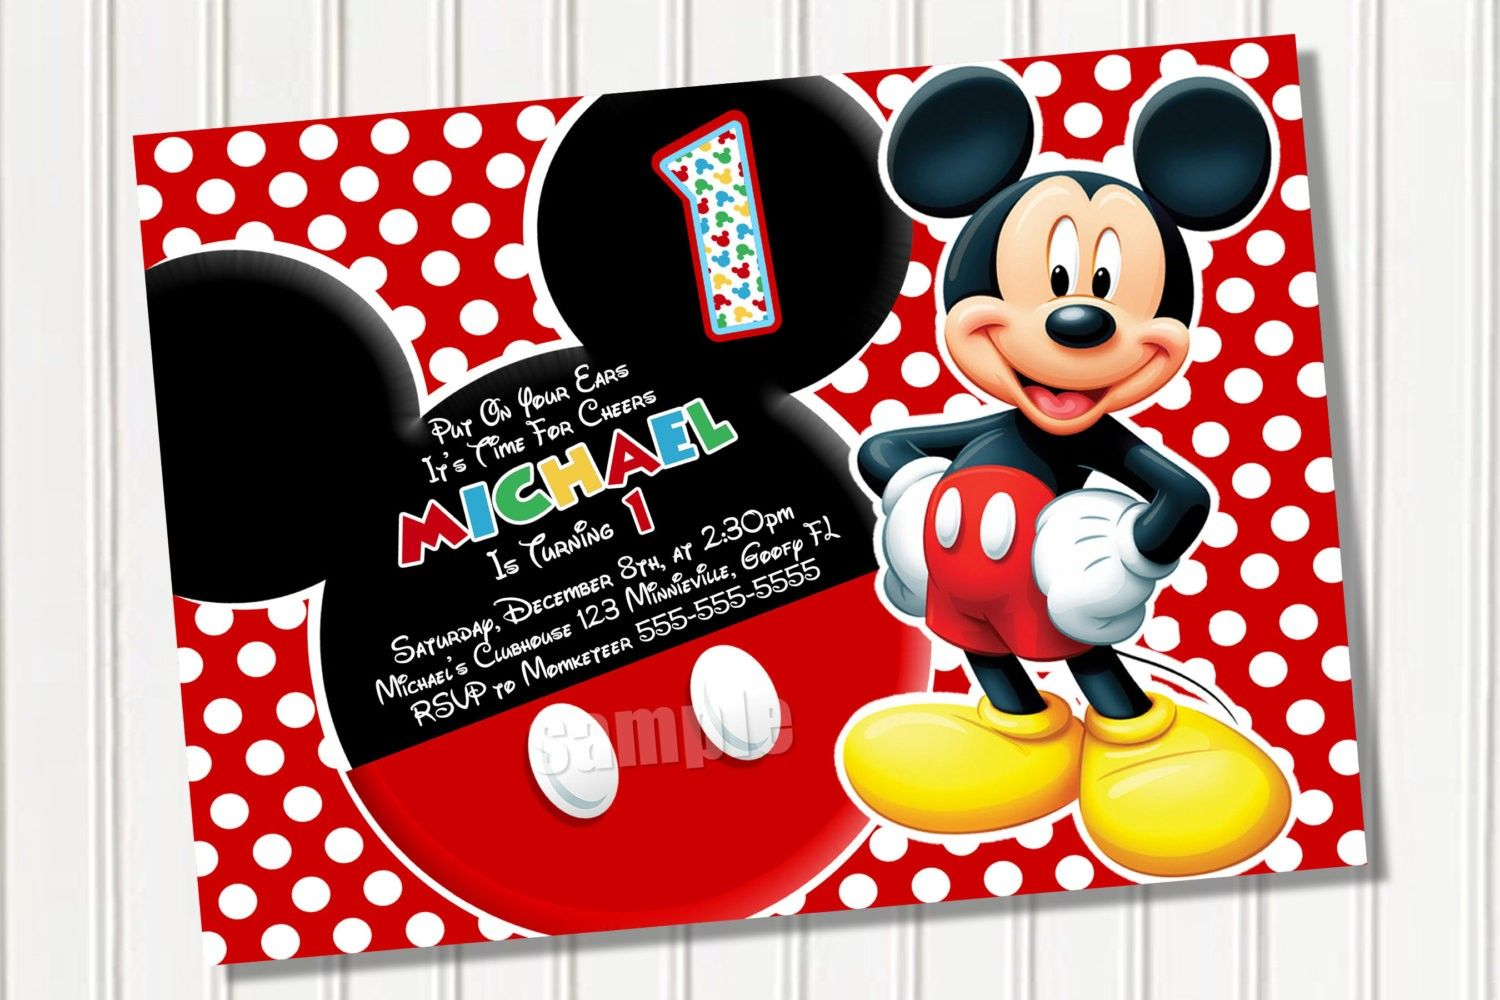 photograph about Free Printable Mickey Mouse 1st Birthday Invitations referred to as Free of charge Printable Mickey Mouse 1st Birthday Social gathering Invites